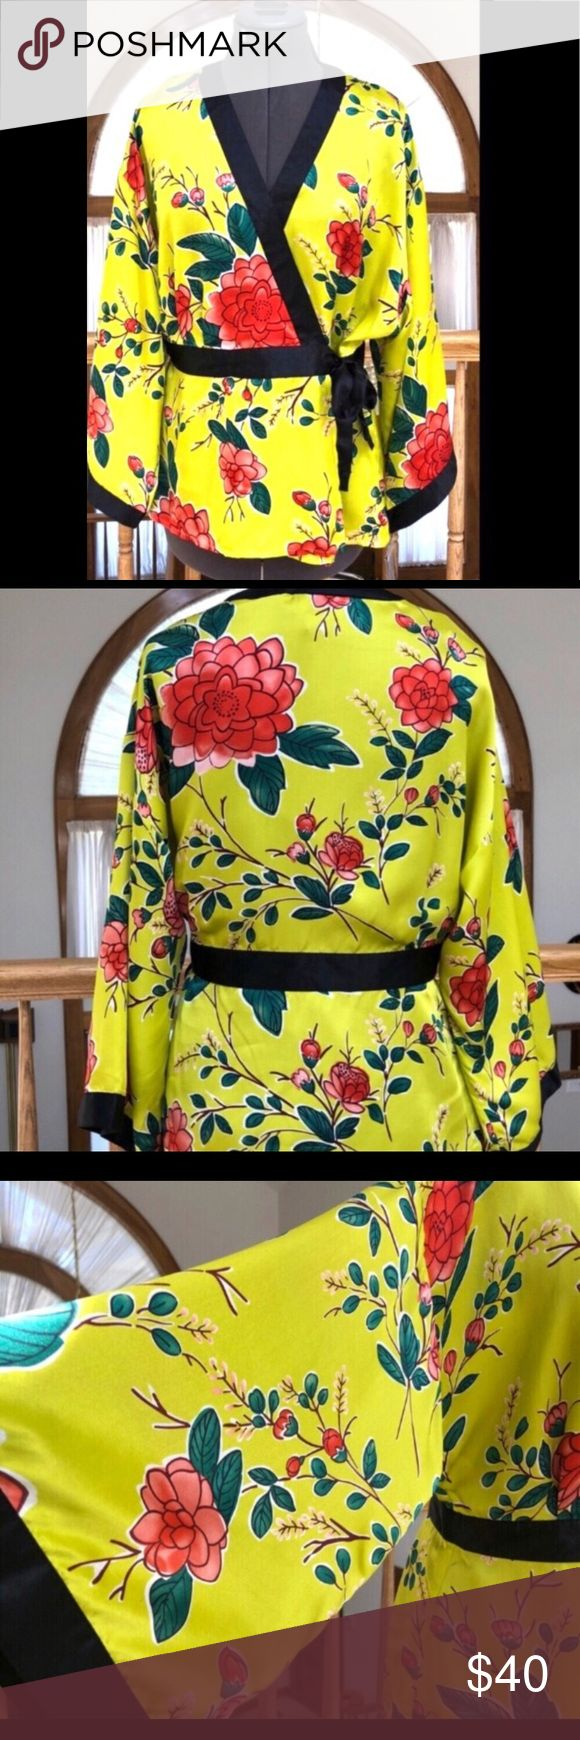 Silk Chartreuse & Pink Floral Kimono with Black Stunning 100% Silk Chartreuse Green Kimono Top with Lipstick Red Lotus Flowers. Top has button at cleavage & button at waist, Black Ribbon Side Tie at  Waist Sz Large NWT From a smoke free pet free home Spenser Jeremy Tops